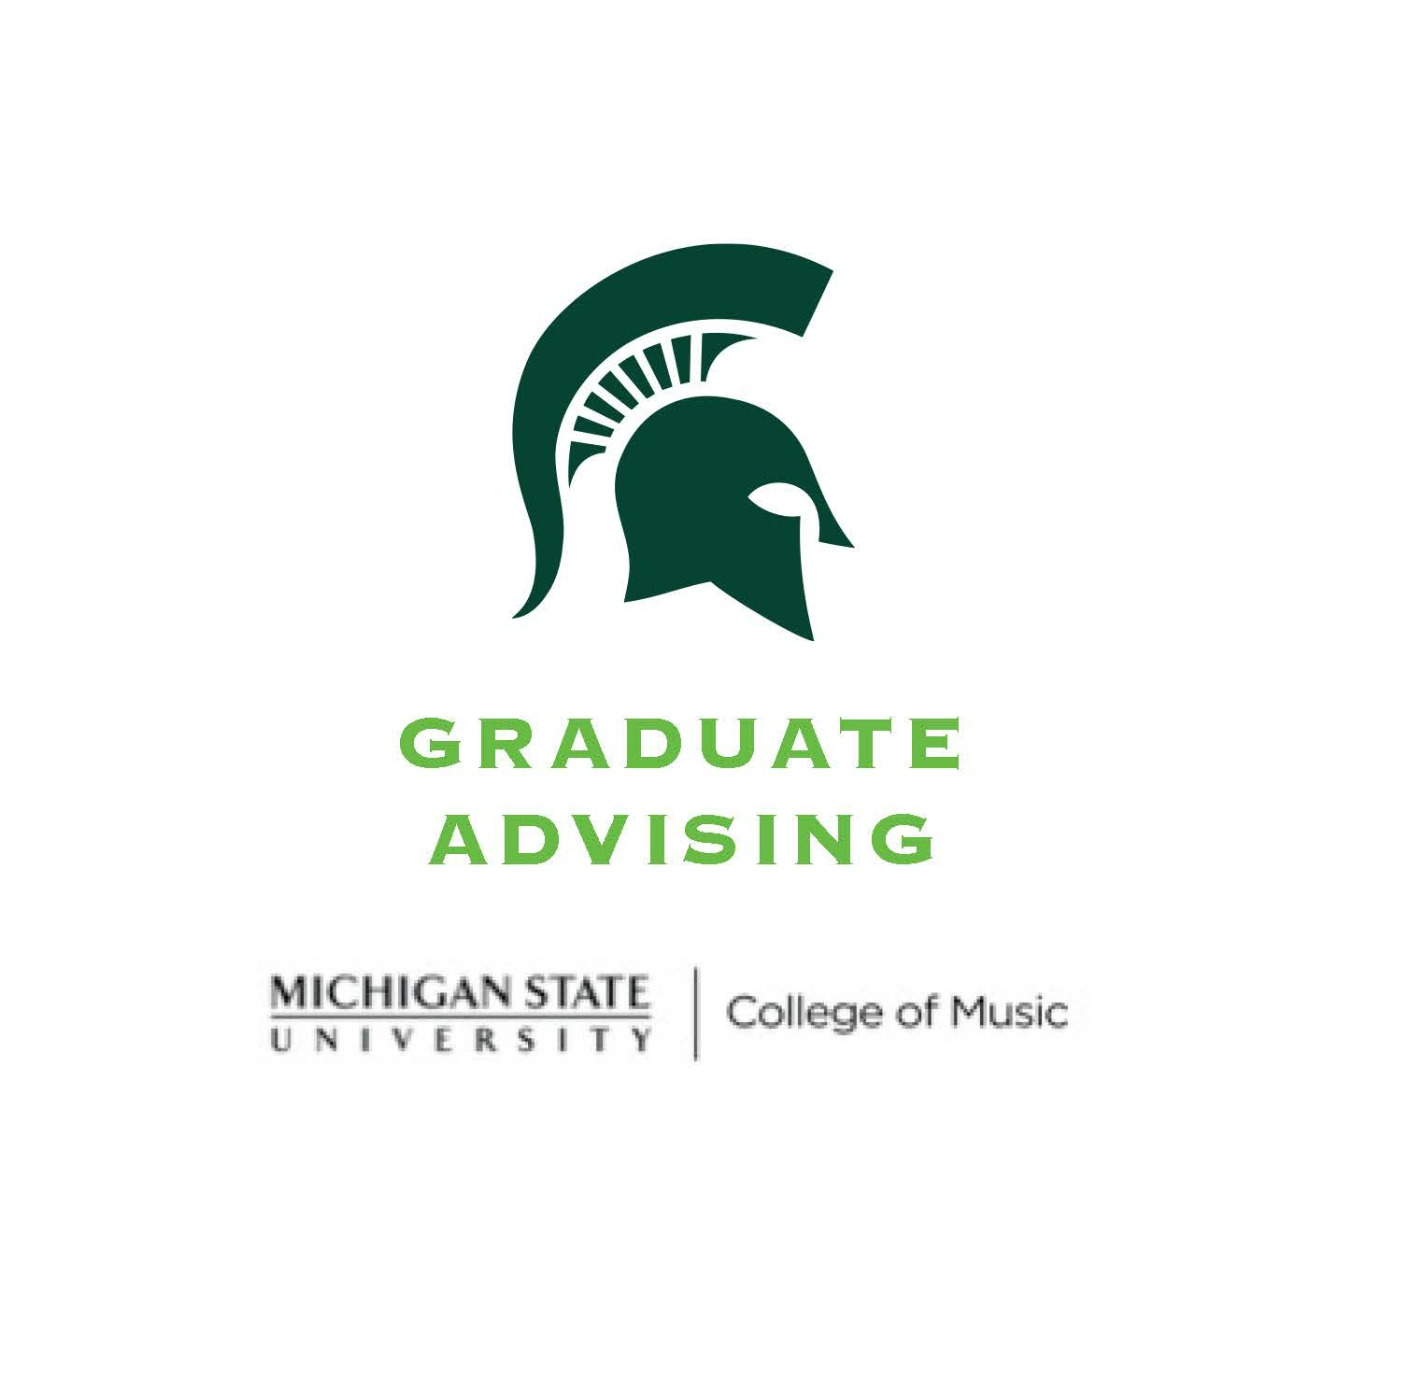 The Scoop - Graduate Advising for MSU's College of Music graduate students